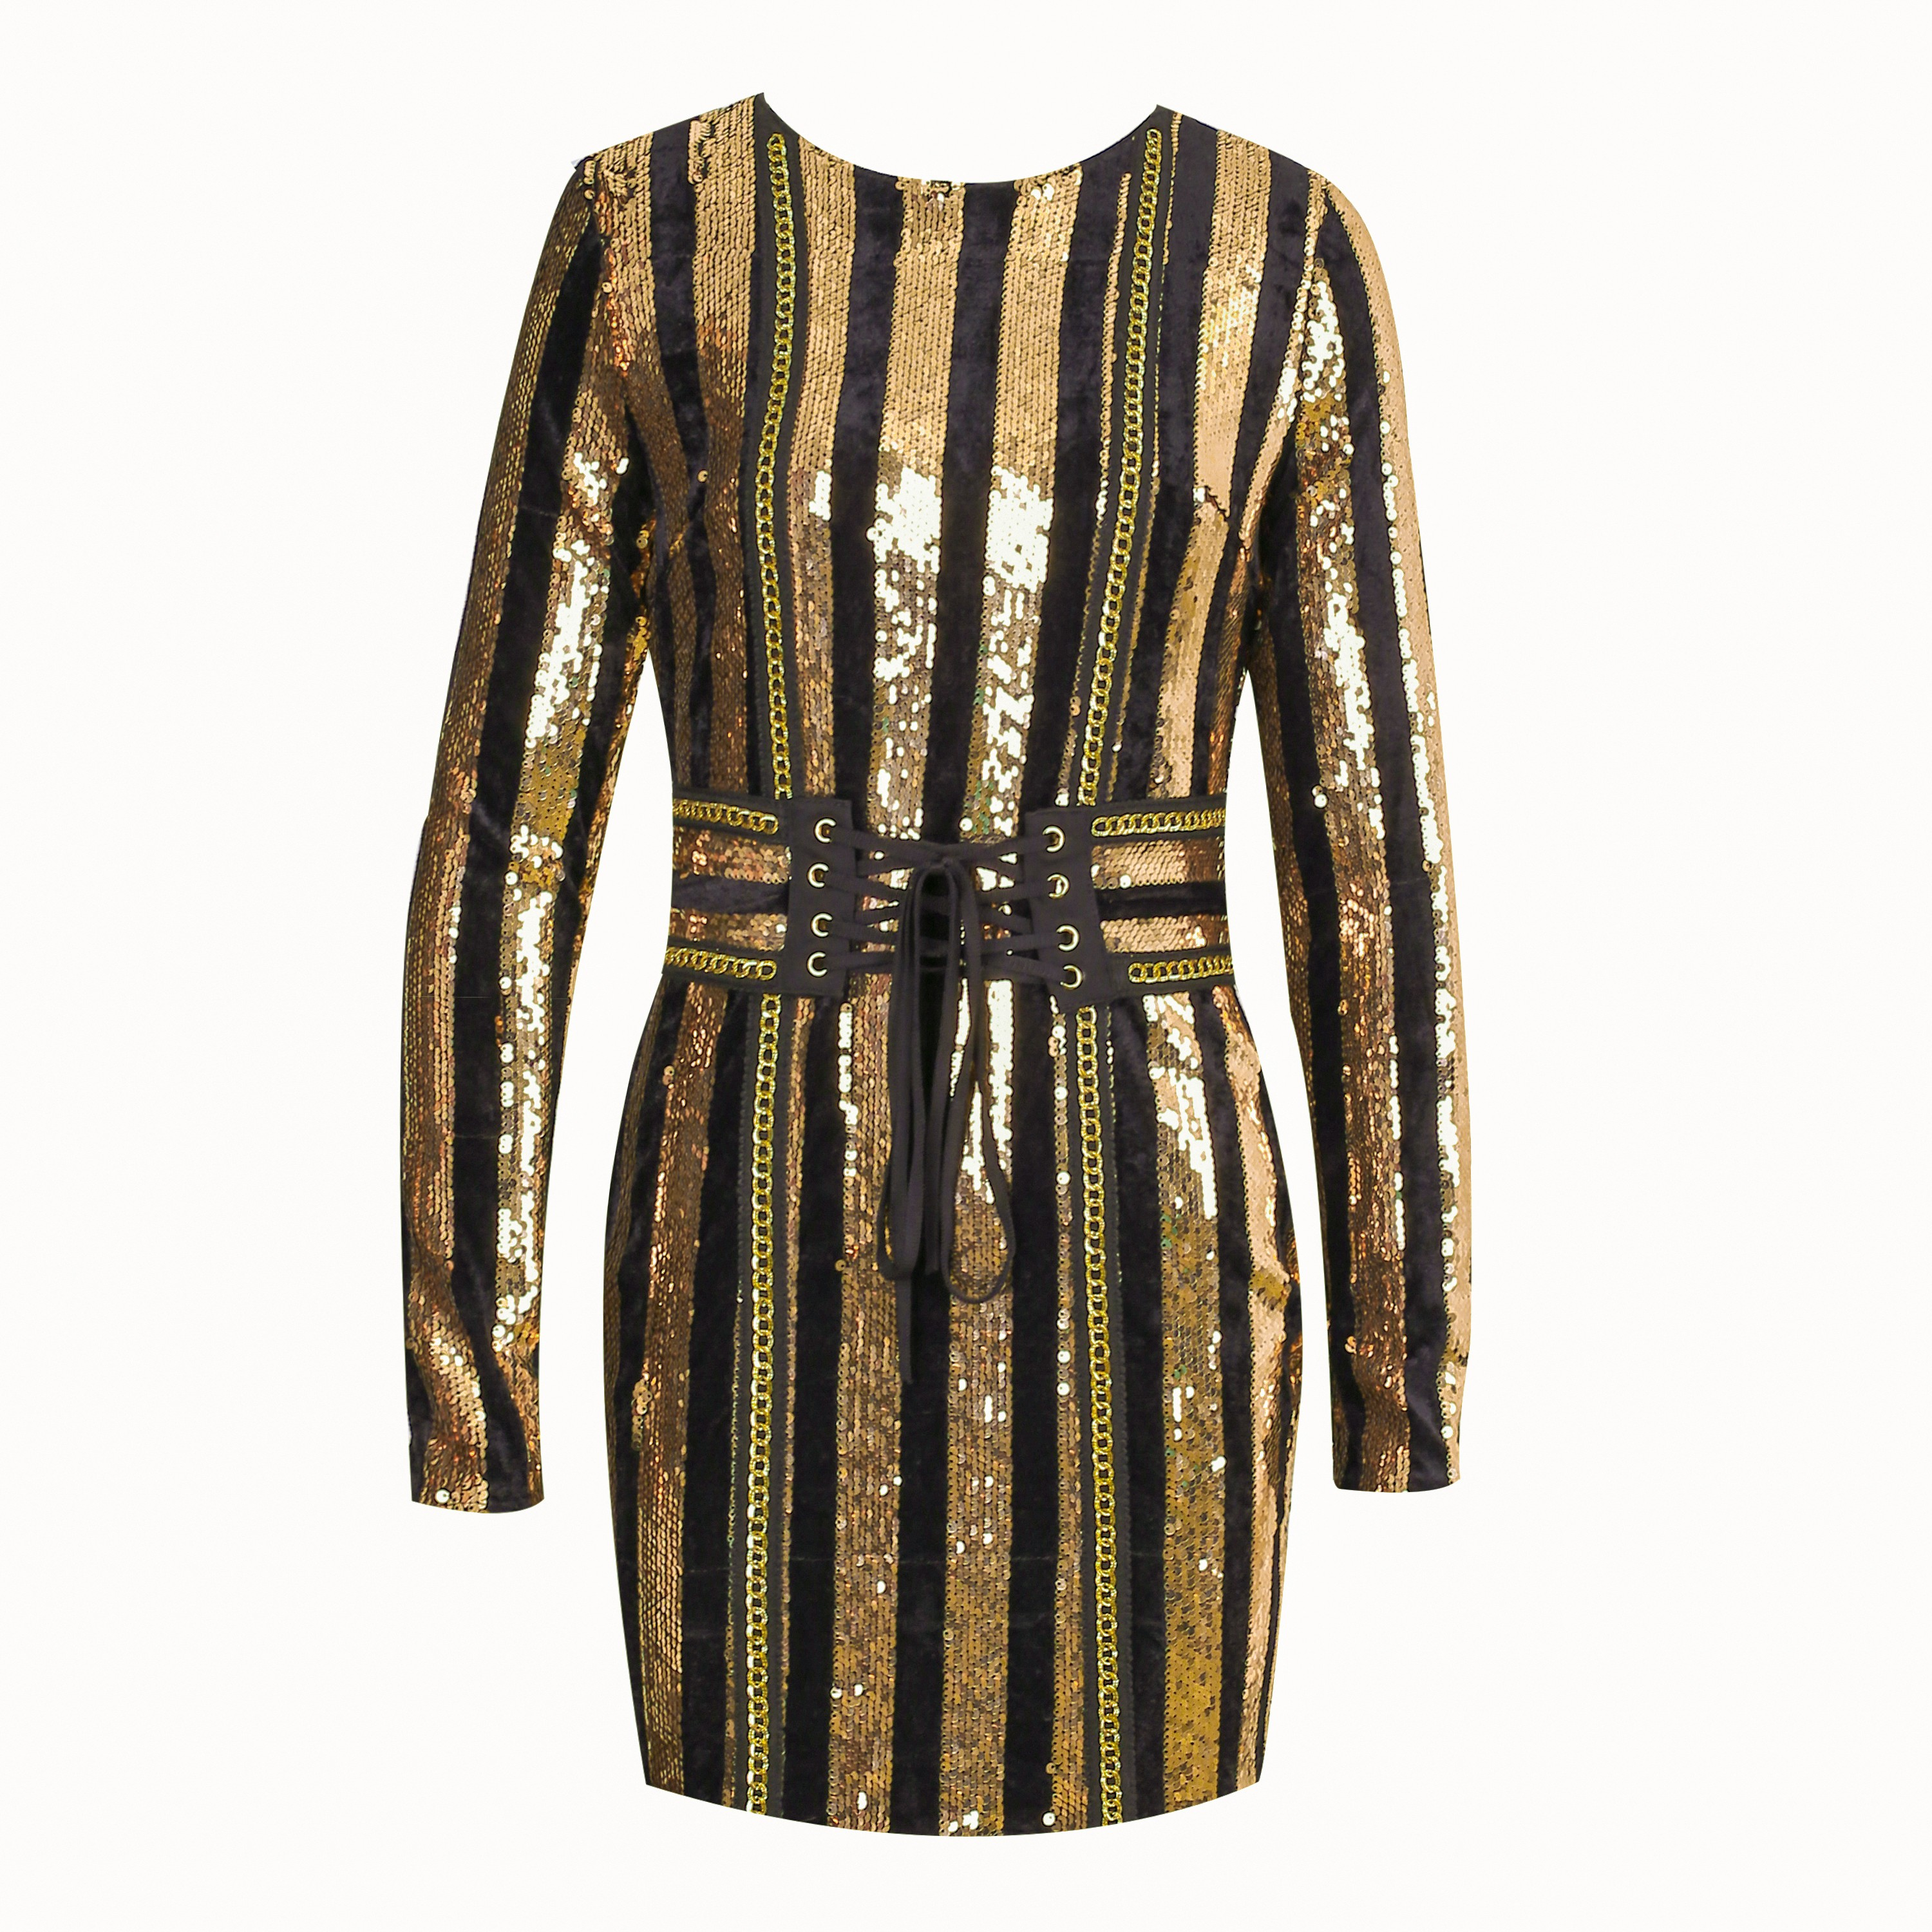 Gold Round Neck Long Sleeve Above Knee Sequined Bling Club Bodycon Dress HW238-Gold